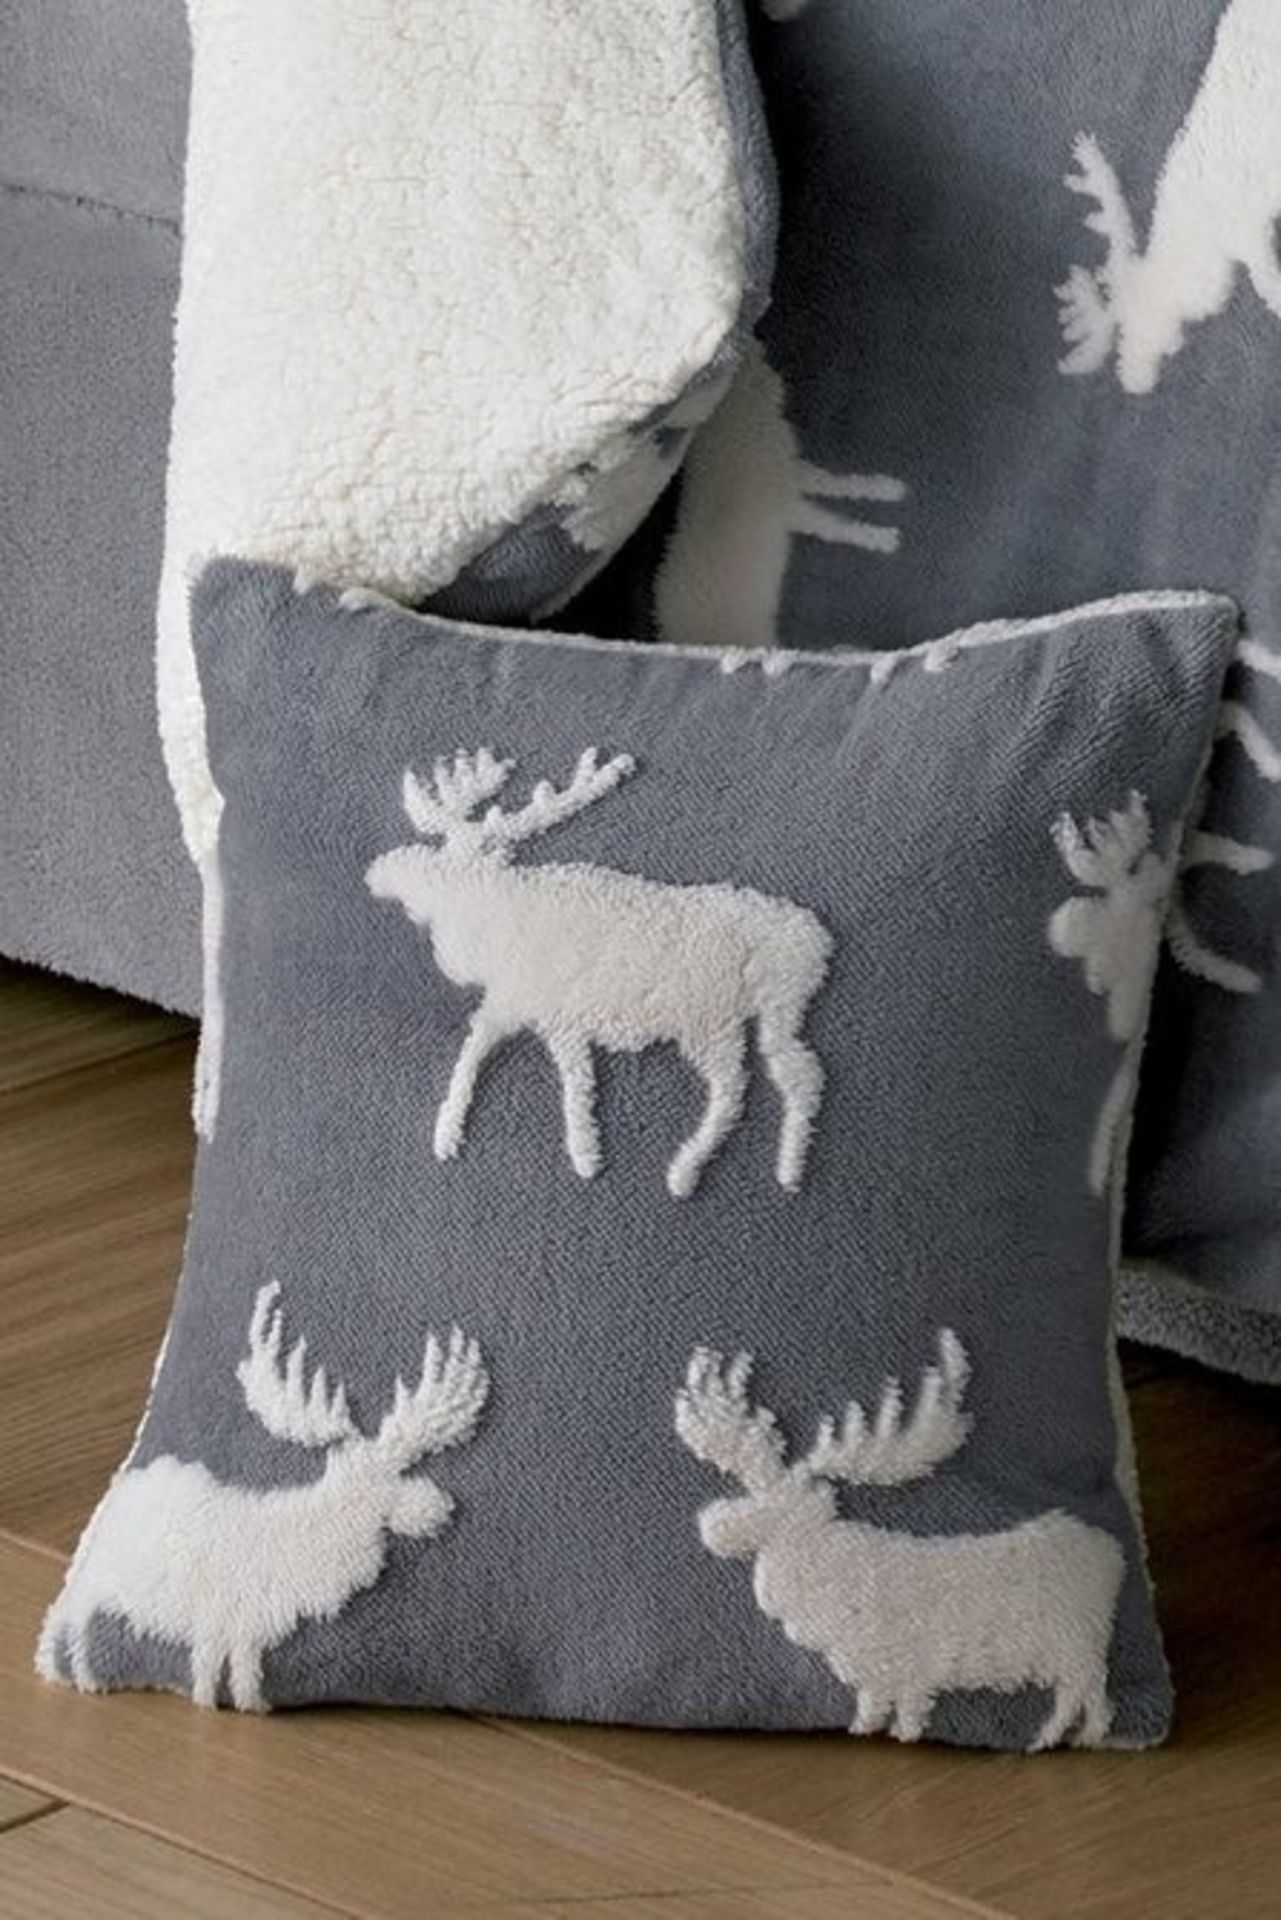 Lot 8 - 1 BAGGED WARM AND COSY TEDDY 3D STAG CUSHION COVER IN GREY (PUBLIC VIEWING AVAILABLE)